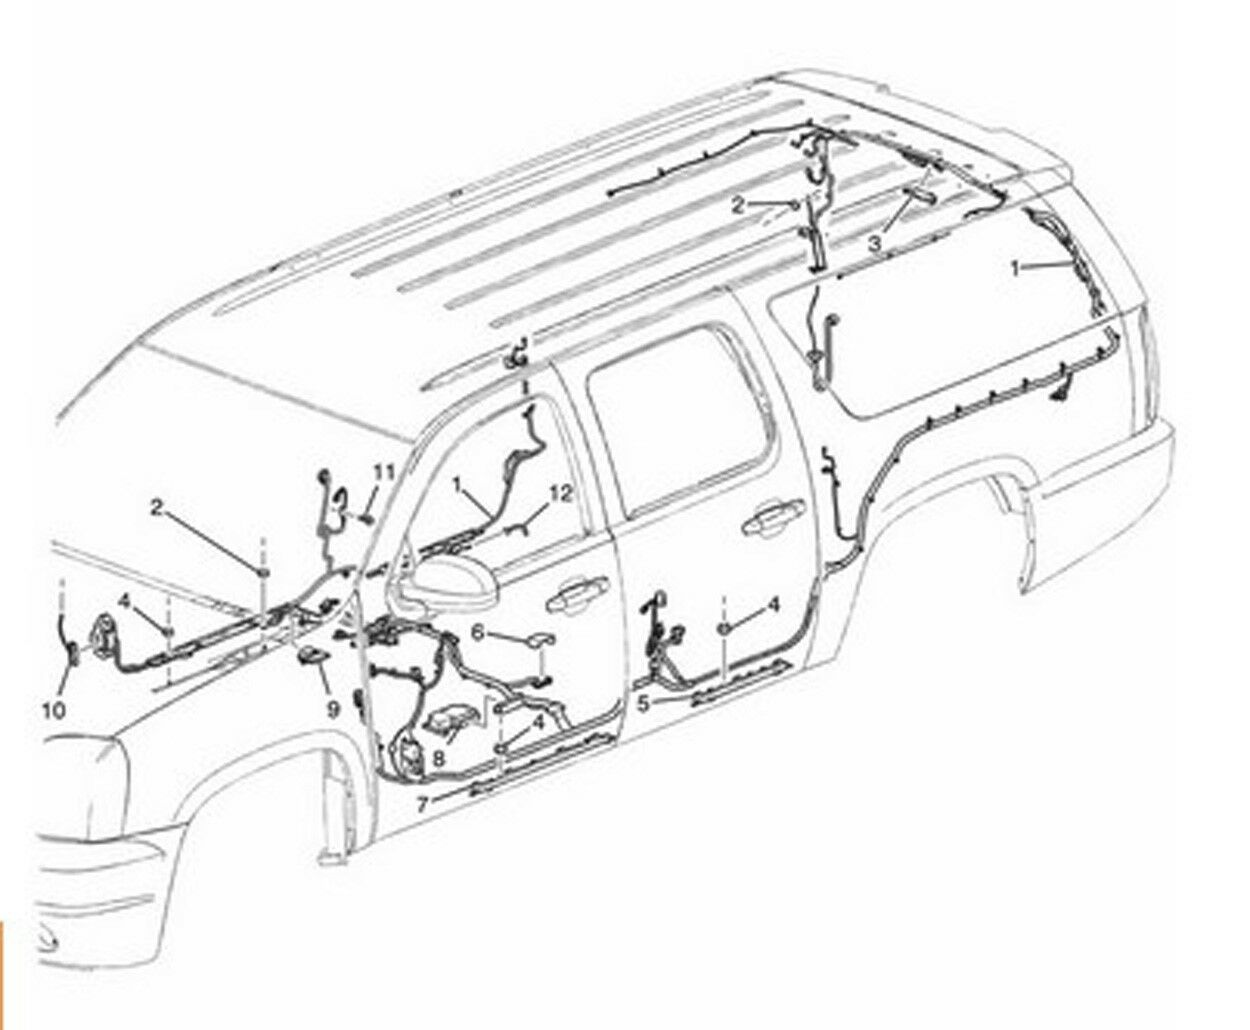 s l1600 2012 14 escalade suburban yukon genuine oem wiring harness body Wiring Harness Diagram at soozxer.org